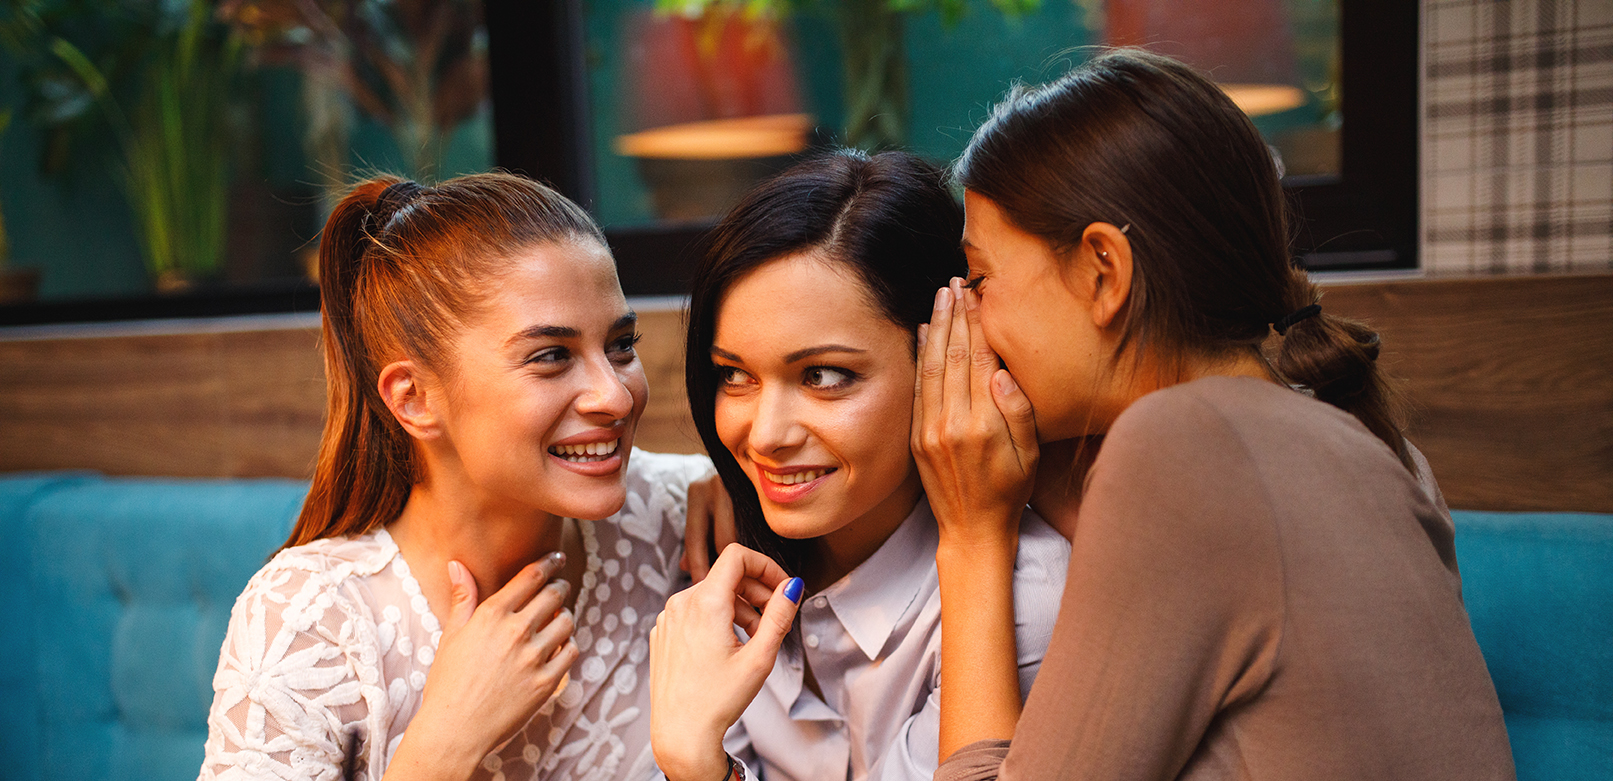 What kind of friendships do you have?3 min read